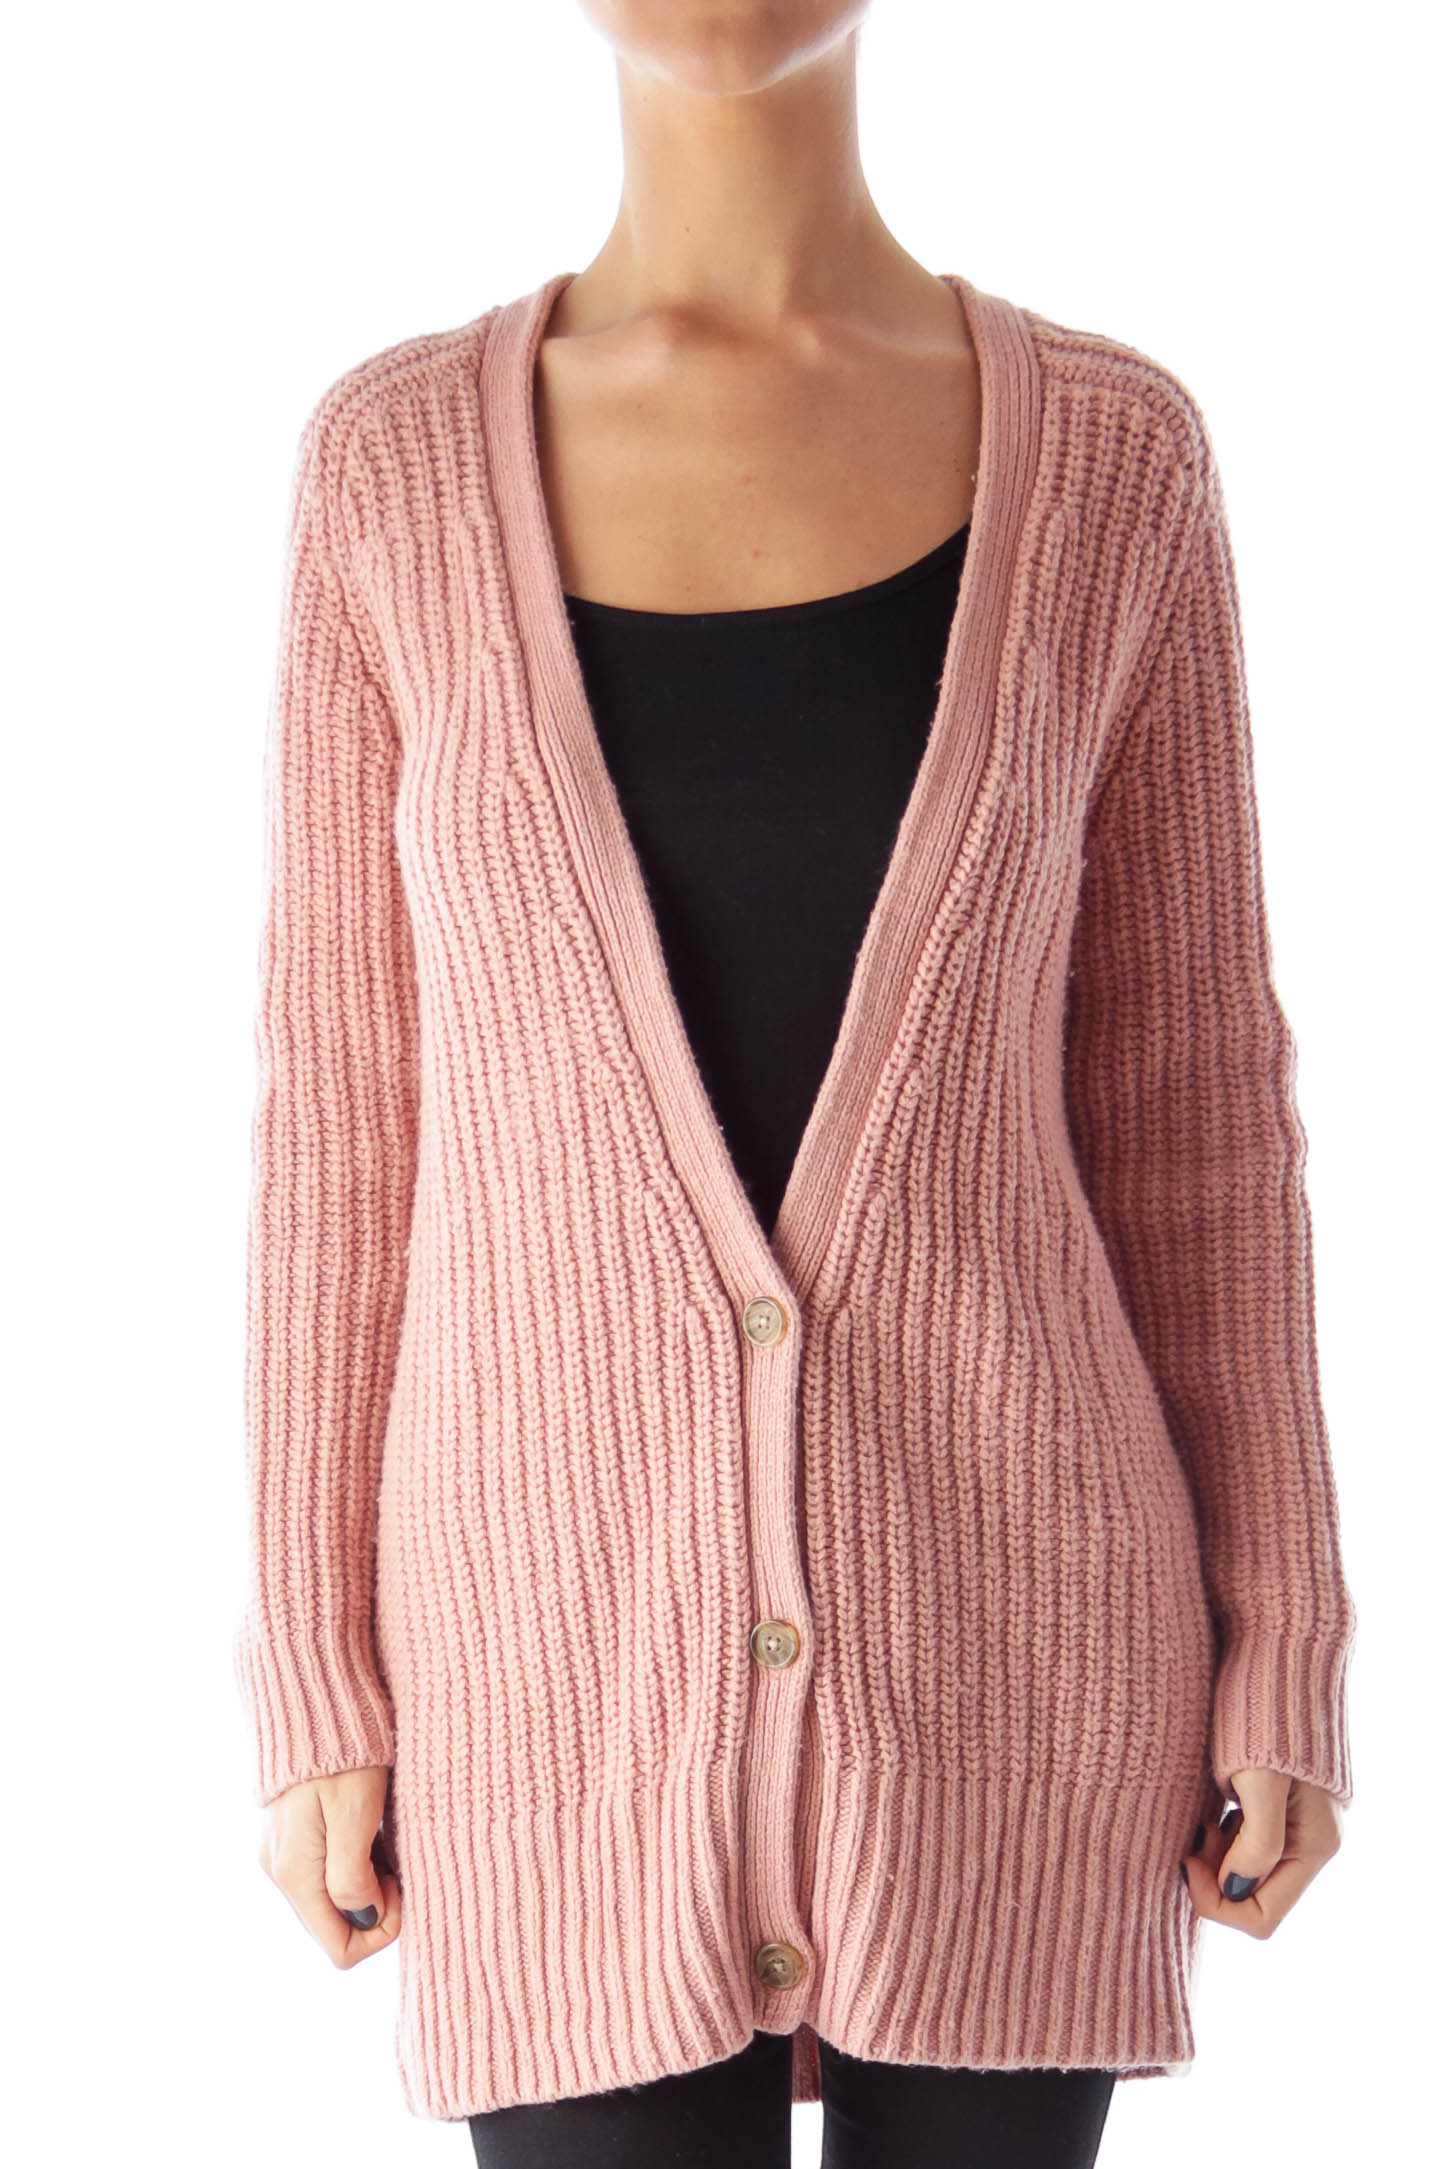 Pink Oversized Chunky Cardigan [S] - SilkRoll